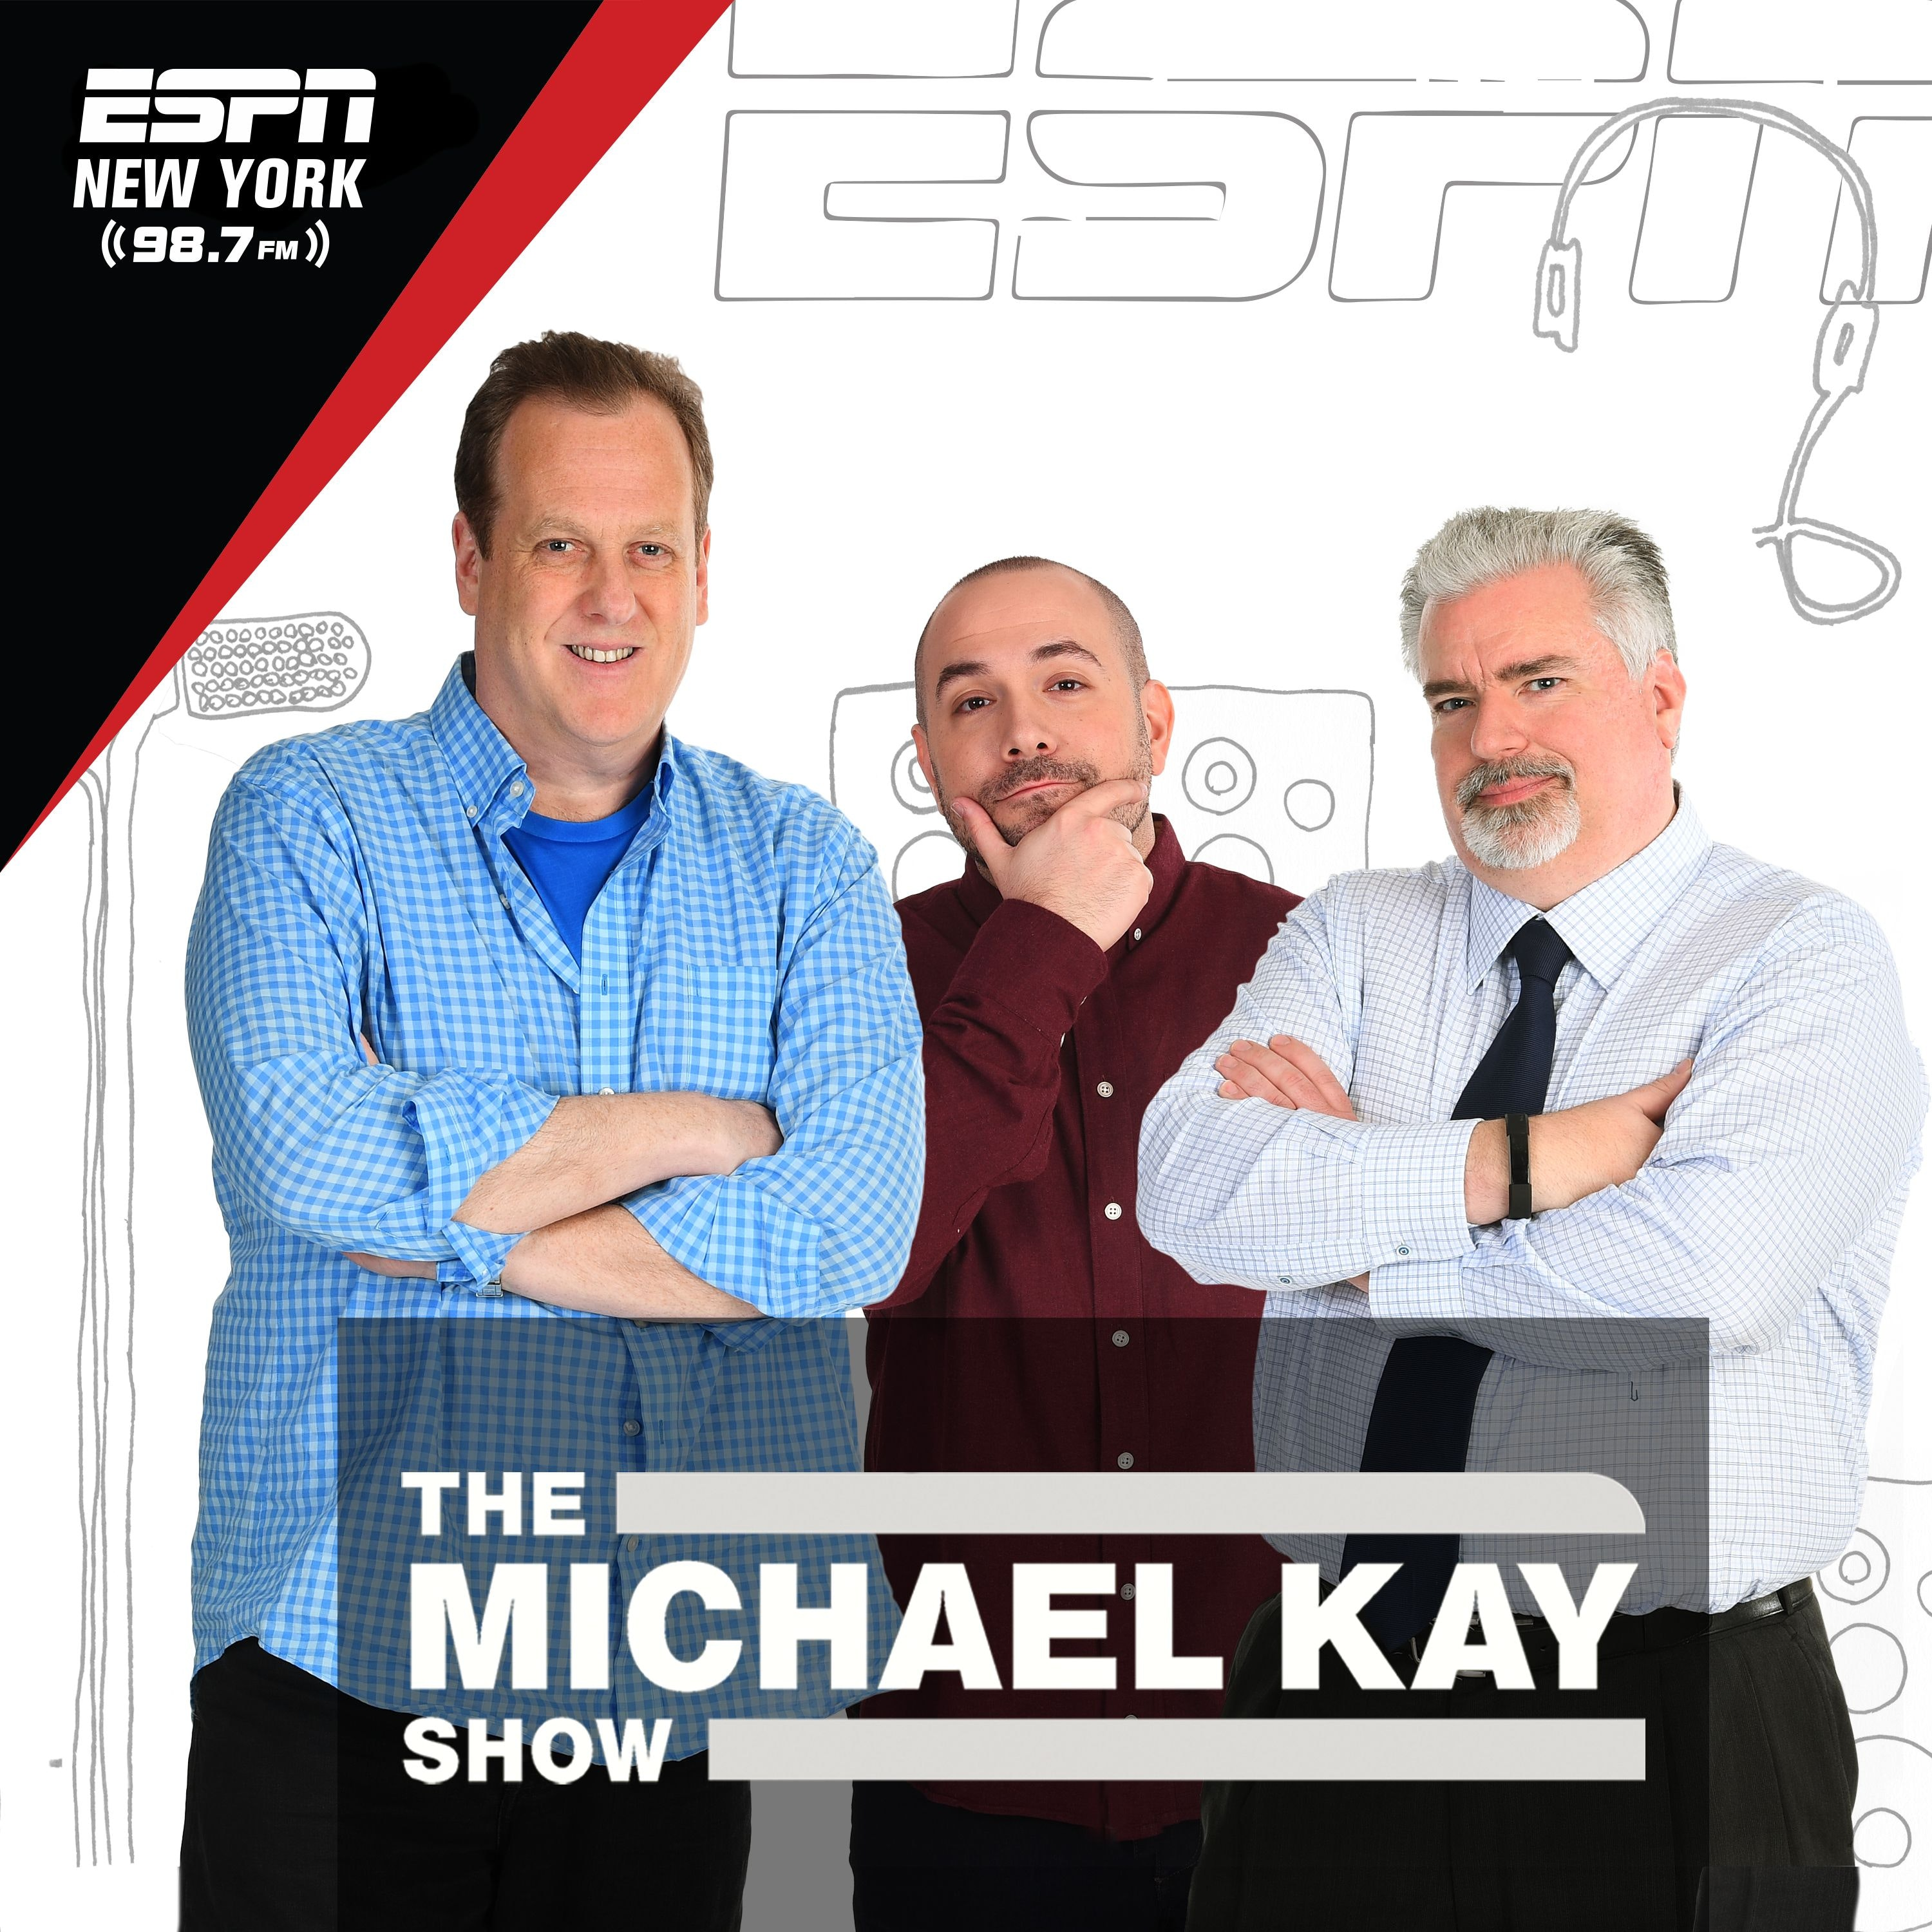 The Michael Kay Show